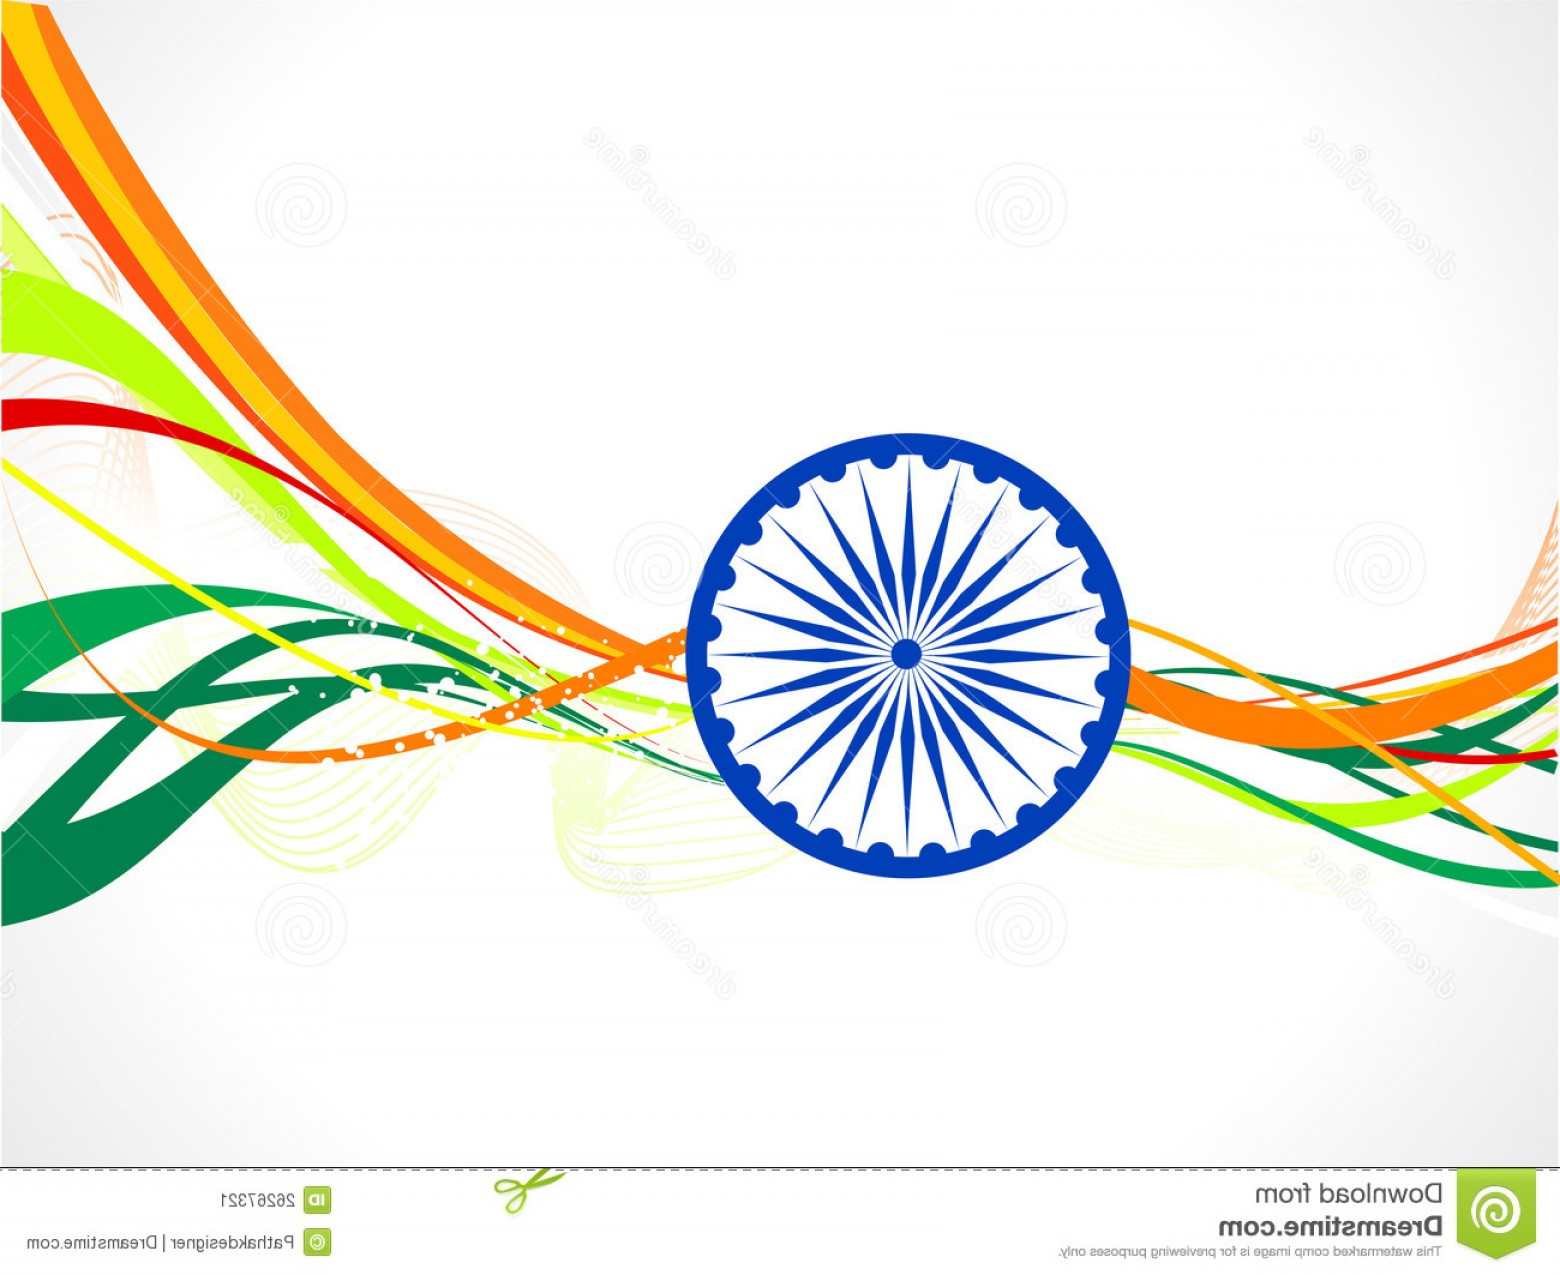 India Flag Vector: Stock Image Abstract Indian Flag Wave Concept Image